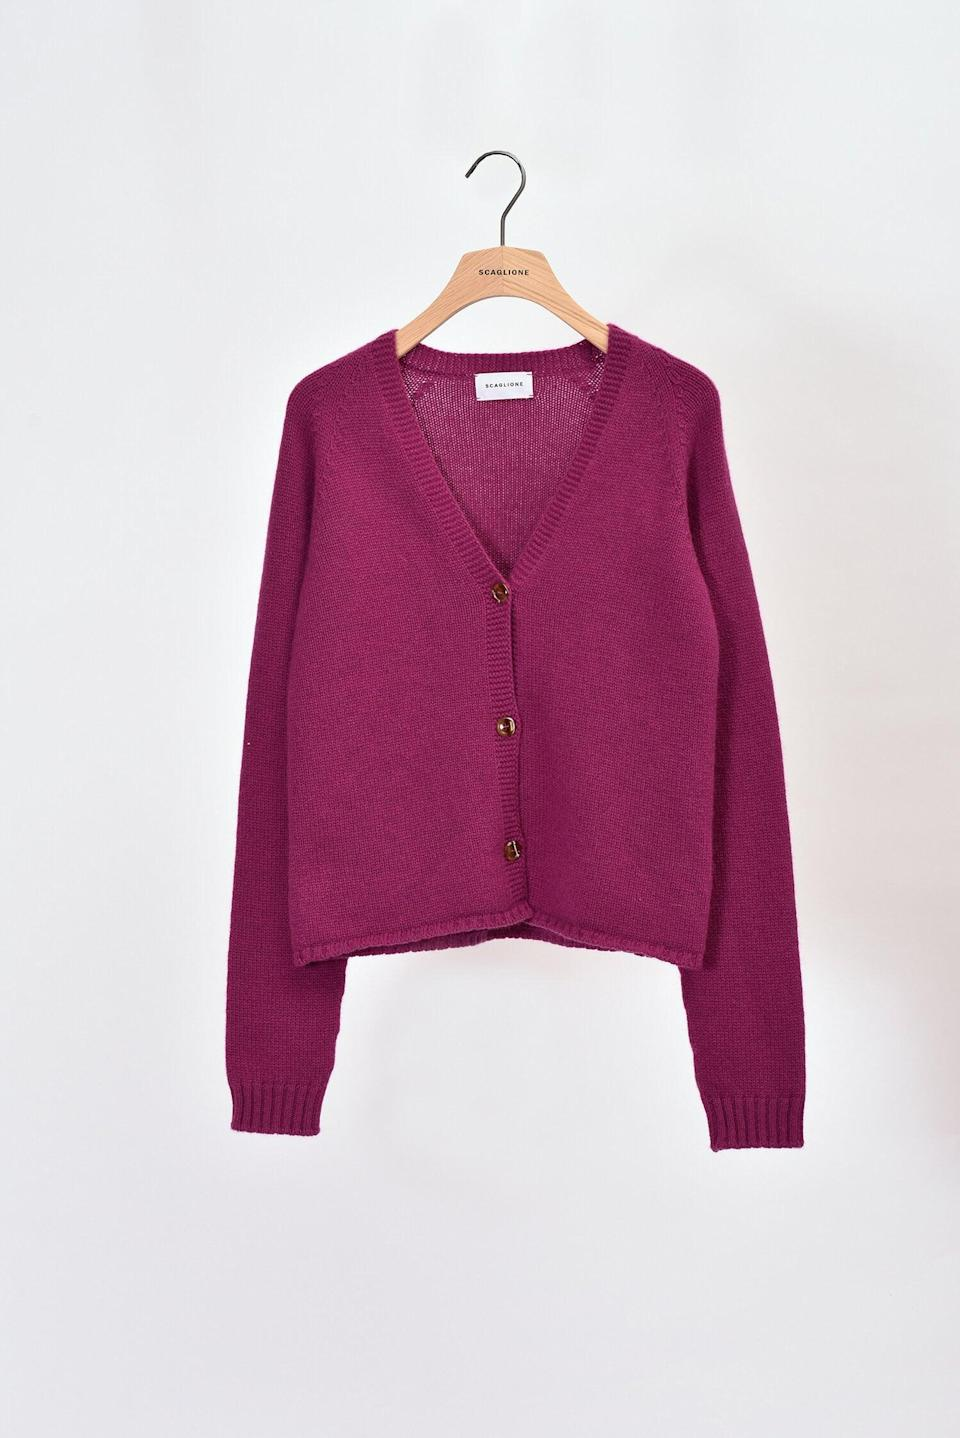 "<p>""I toss this <span>seamless cardigan from Scaglione</span> ($285) over my looks because it's winter, and cashmere always feel like a big hug and a treat. I have a lot of cream, camel, and beige knits that are already my go-tos, but this rich jewel tone just cheers me up.""</p>"